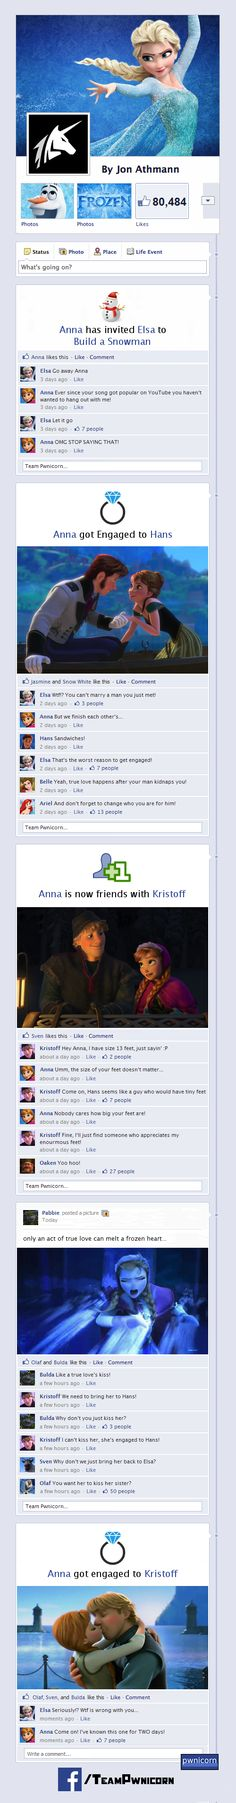 Frozen Told Through Facebook from Team Pwnicorn